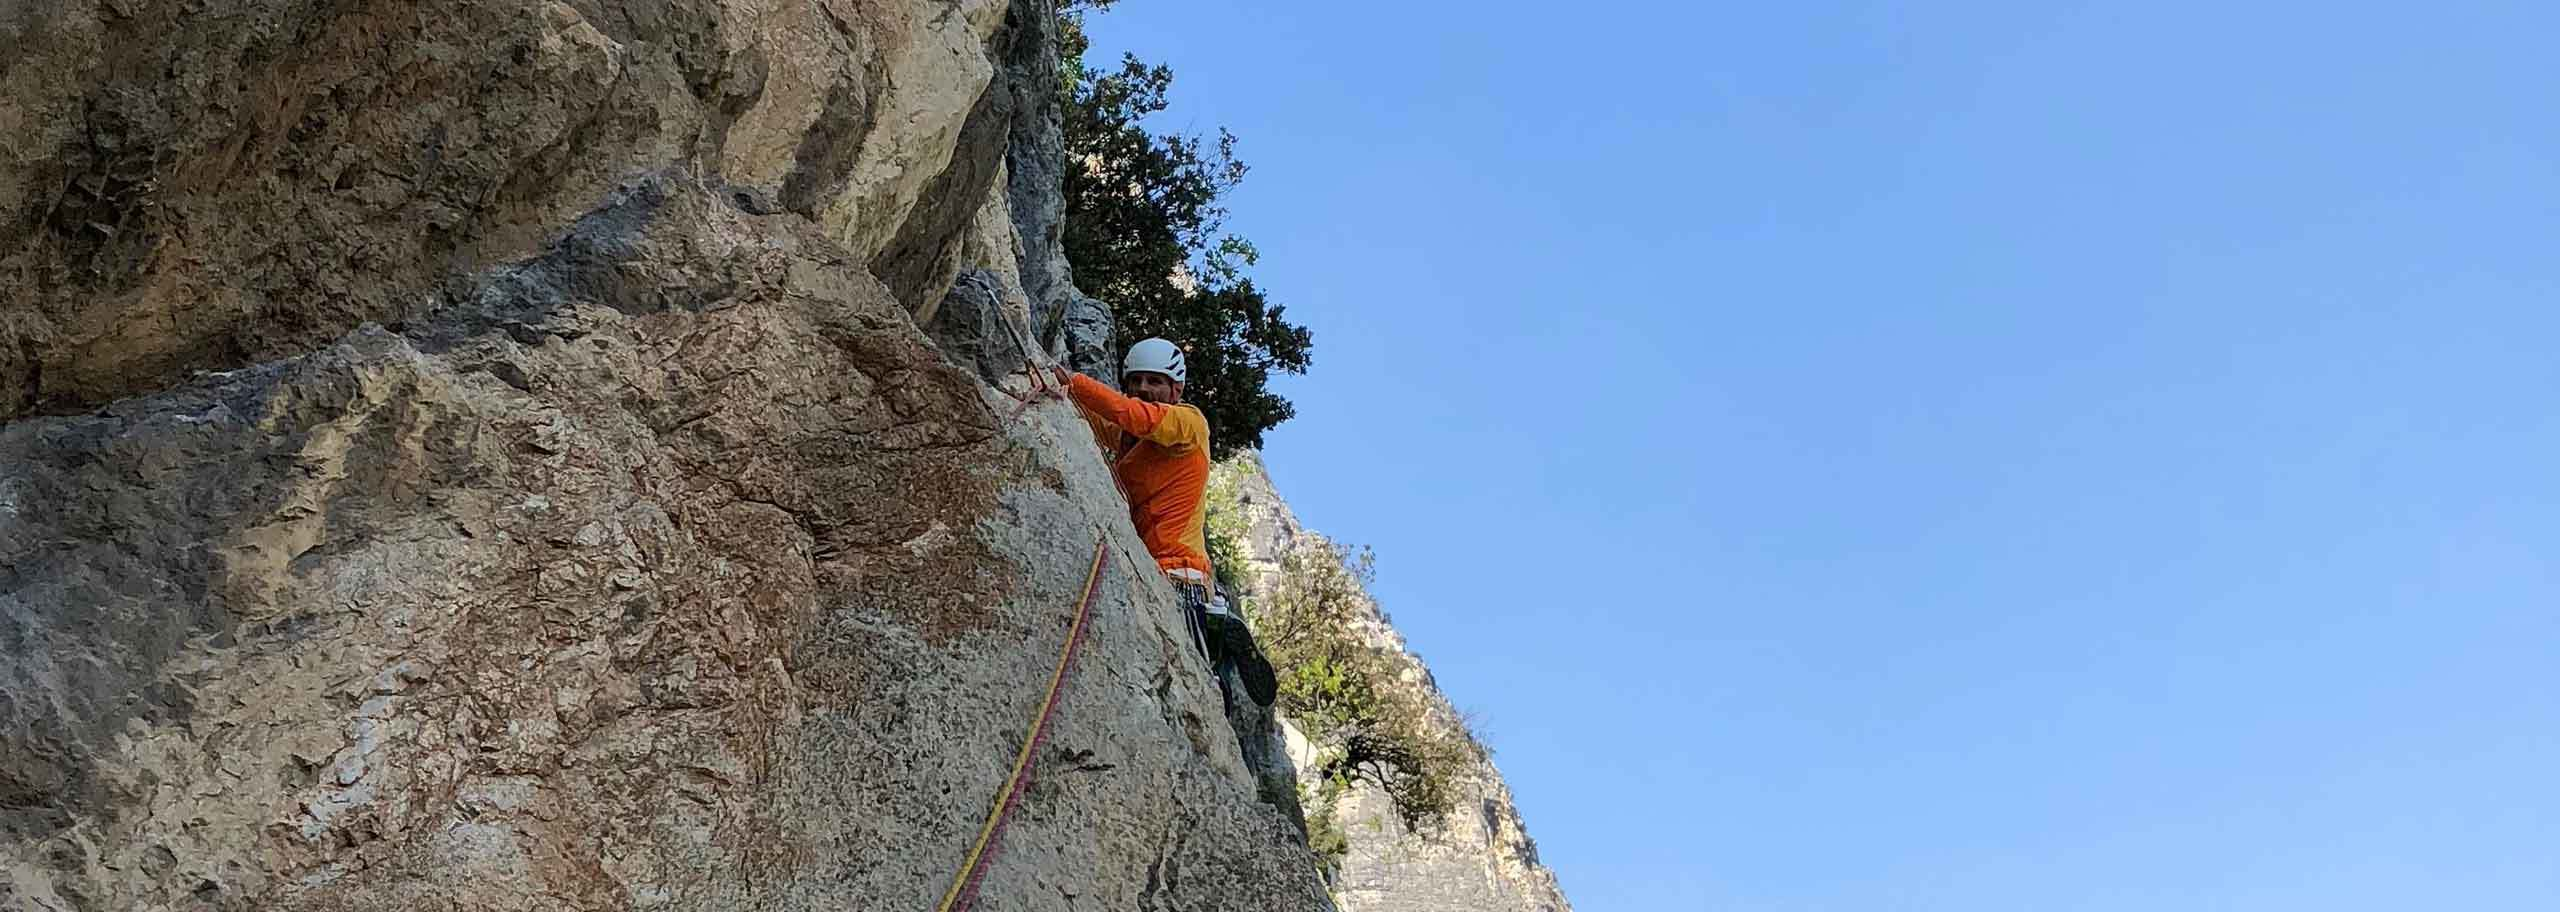 Rock Climbing in Alagna Valsesia with a Mountain Guide